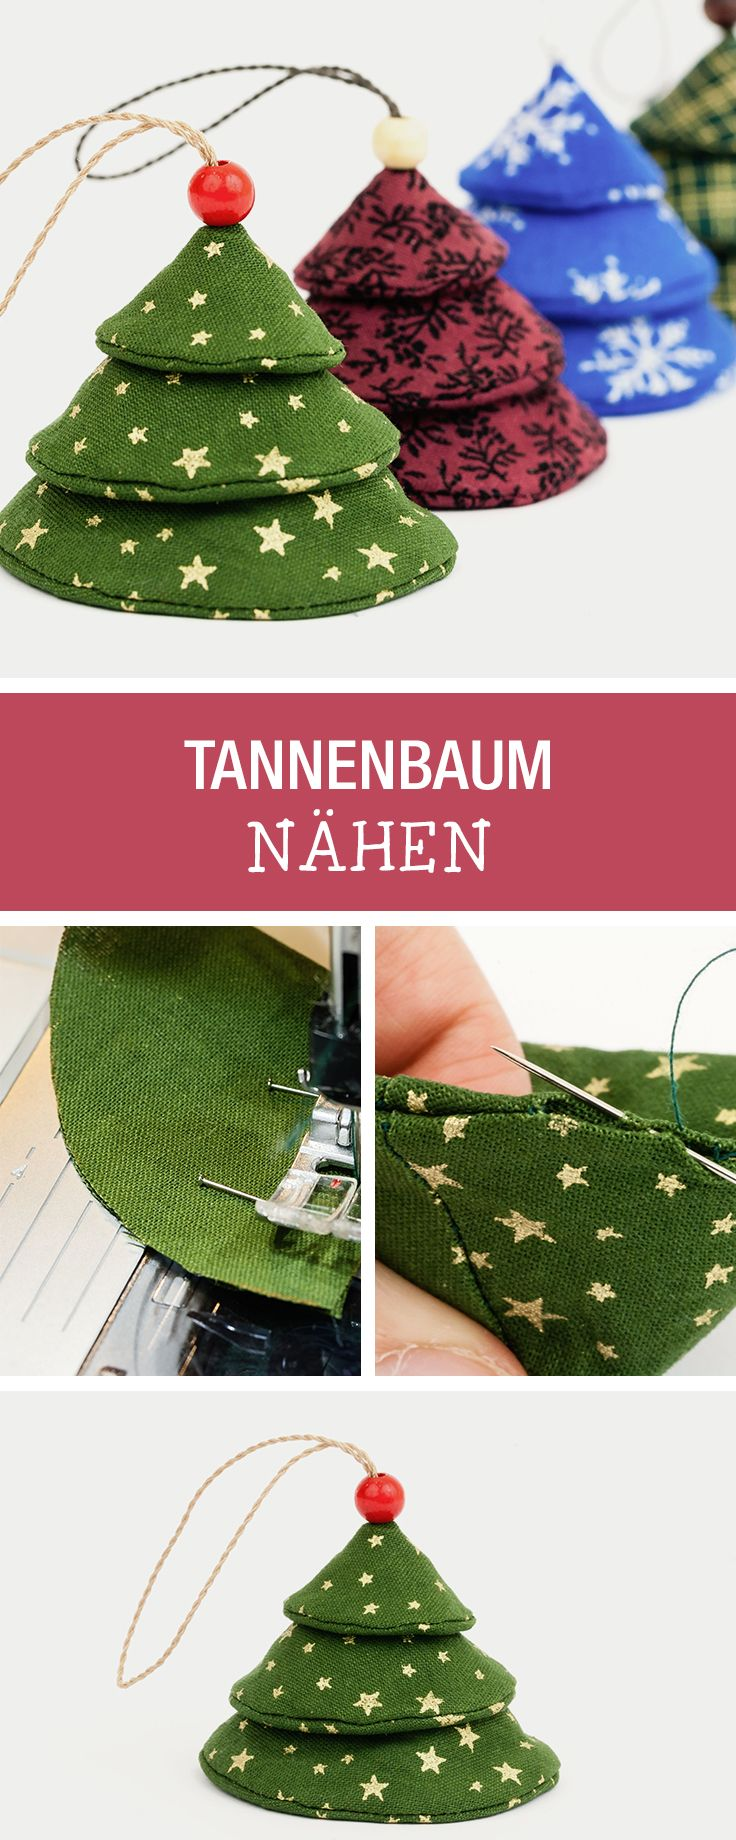 Dekoideen für Weihnachten: Näh kleine Tannenbäume als Weihnachtsbaumschmuck / diy christmas decoration: how to sew little christmas trees via DaWanda.com